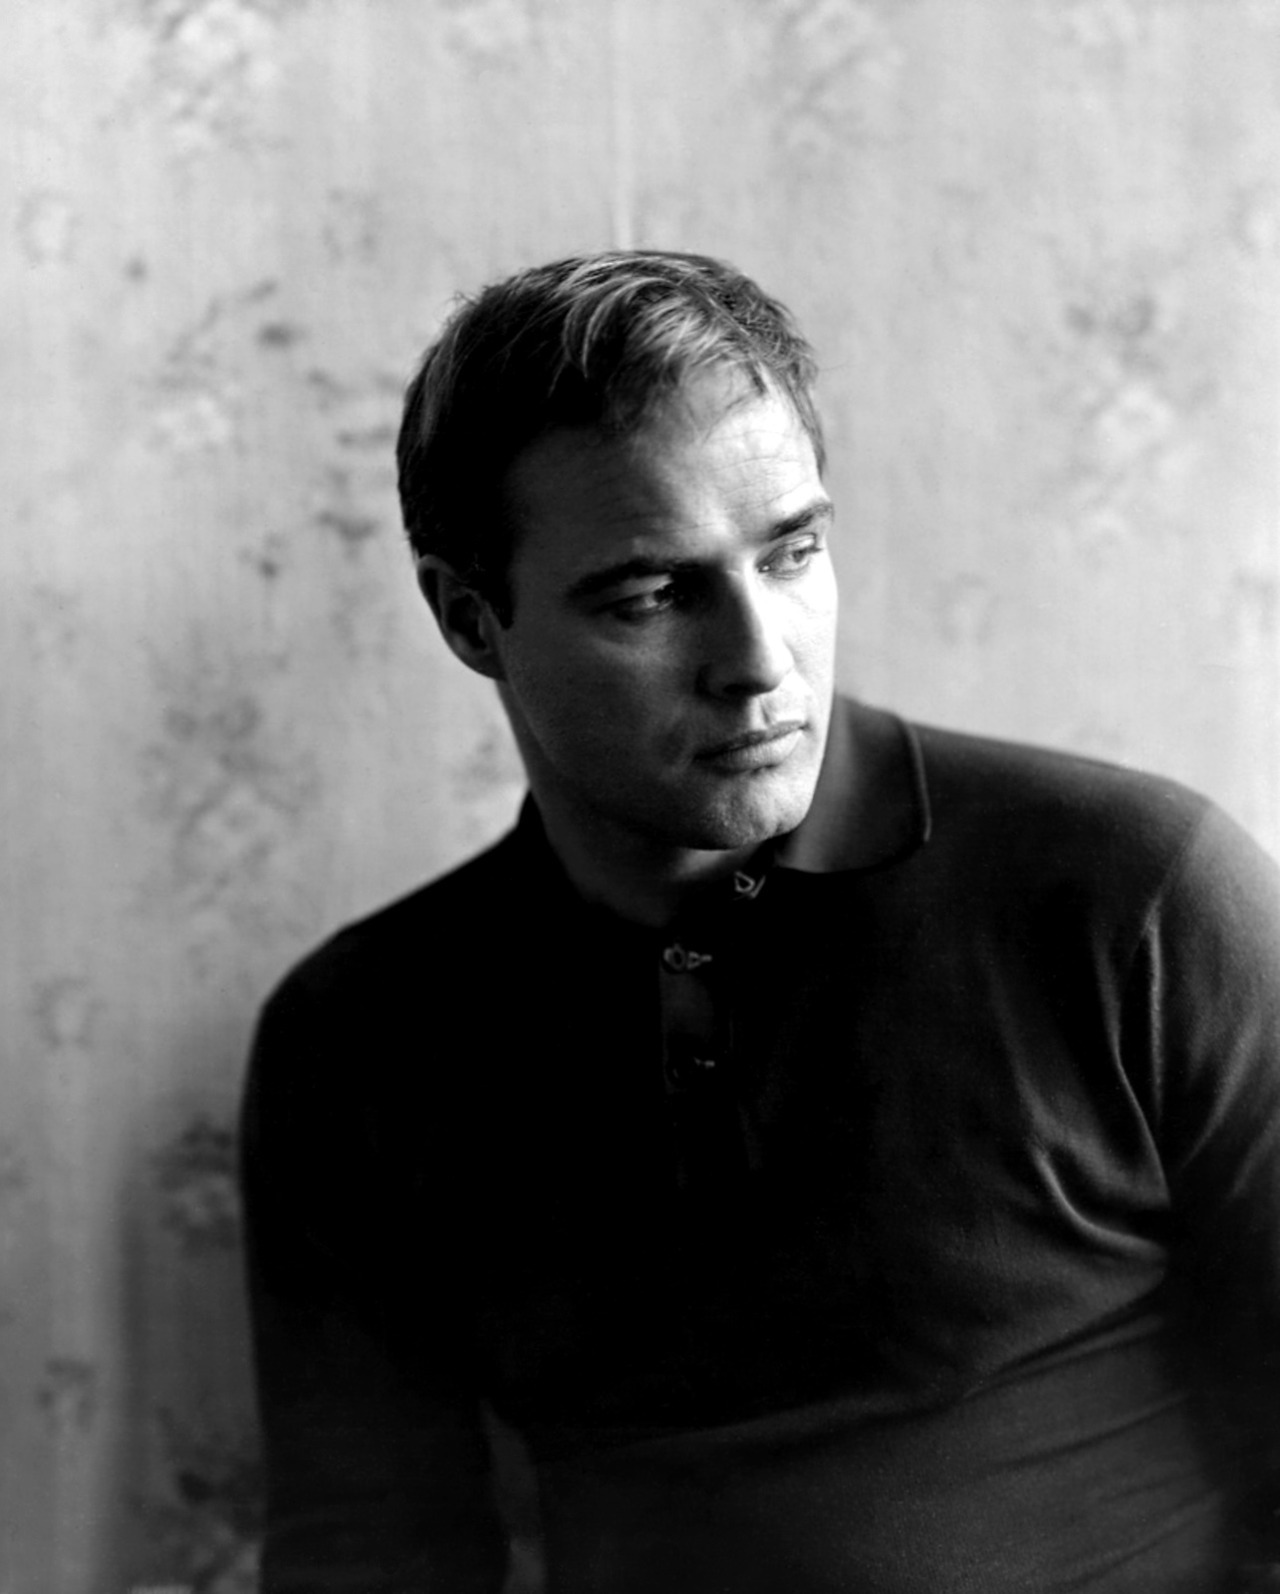 Marlon Brando  hedda-hopper:  Acting is the expression of a neurotic impulse. It's a bum's life. Quitting acting is a sign of maturity. ~ Marlon Brando